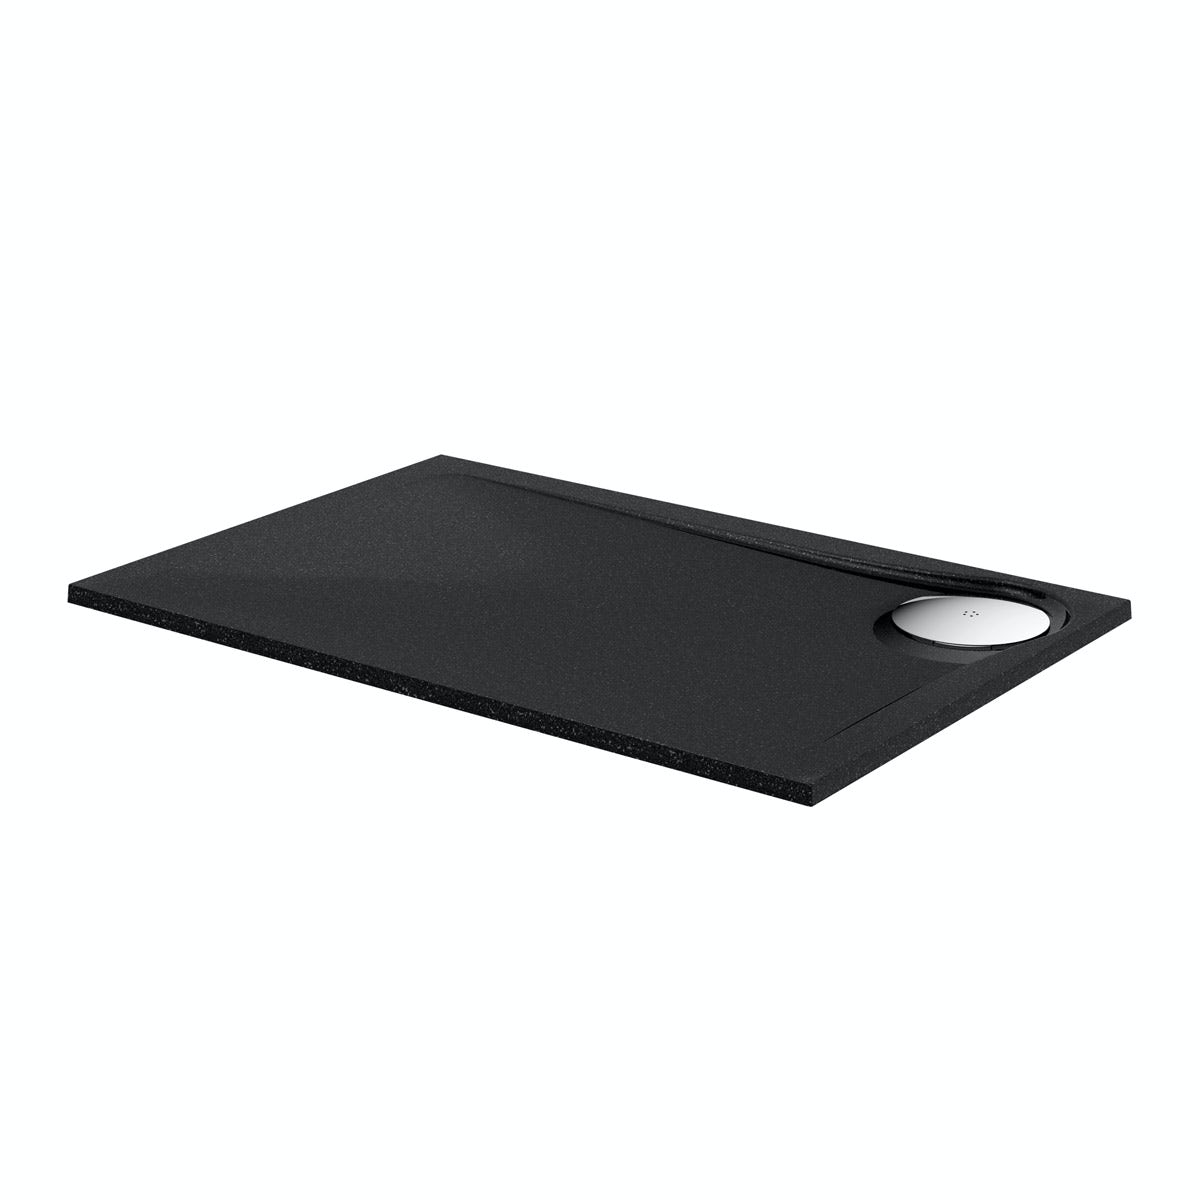 Black granite effect left handed rectangular stone shower tray 1200 x 800